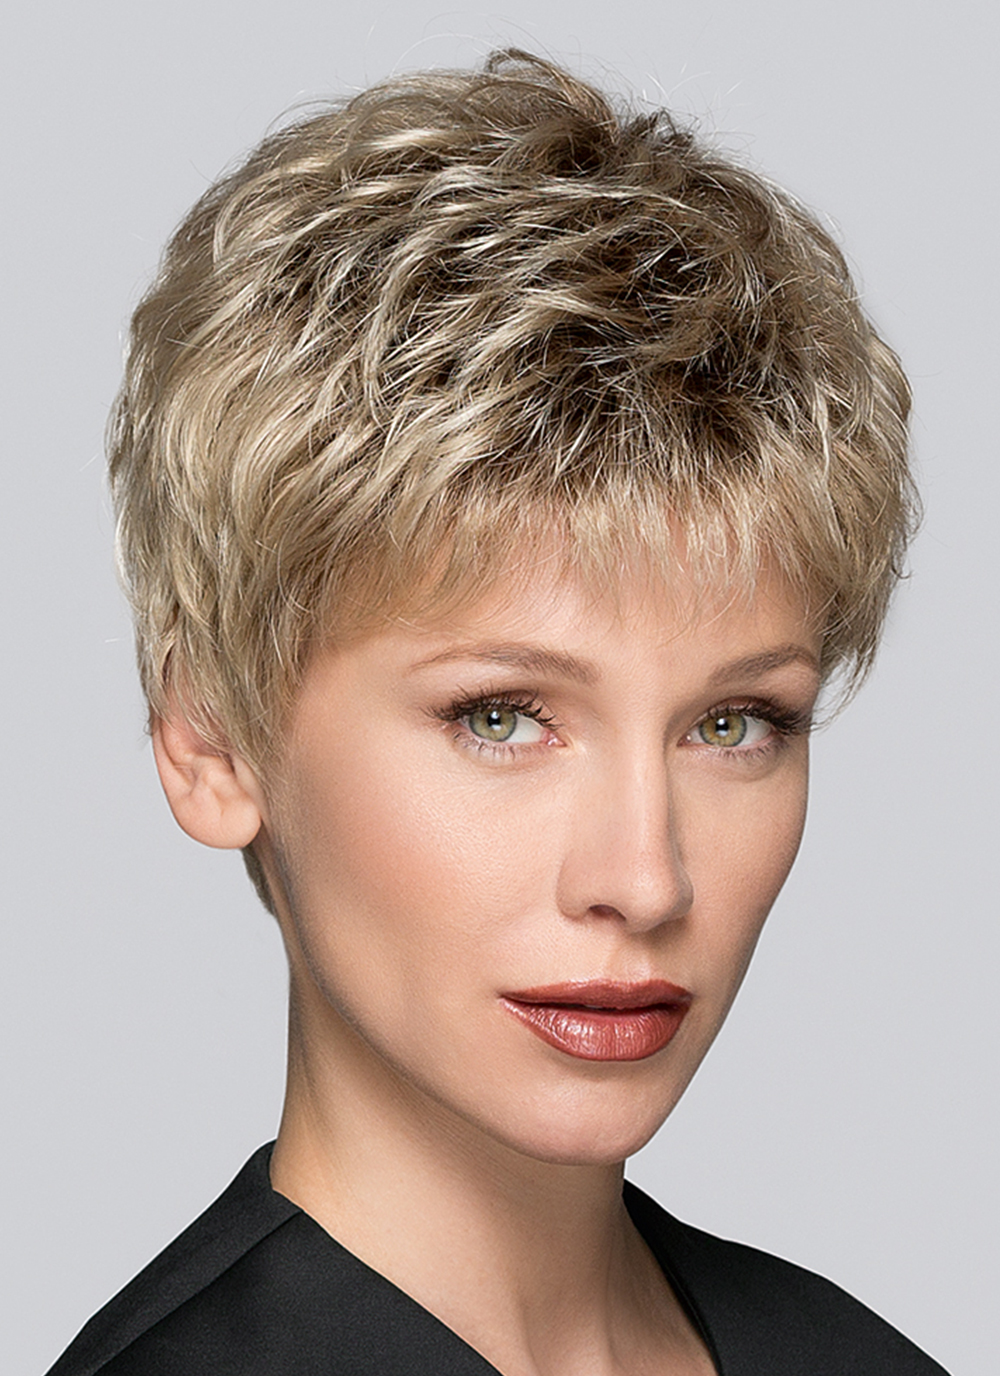 TAB by Ellen Wille in SANDY BLONDE ROOTED | Medium Honey Blonde, Light Ash Blonde, and Lightest Reddish Brown Blend with Dark Rootsold short layers